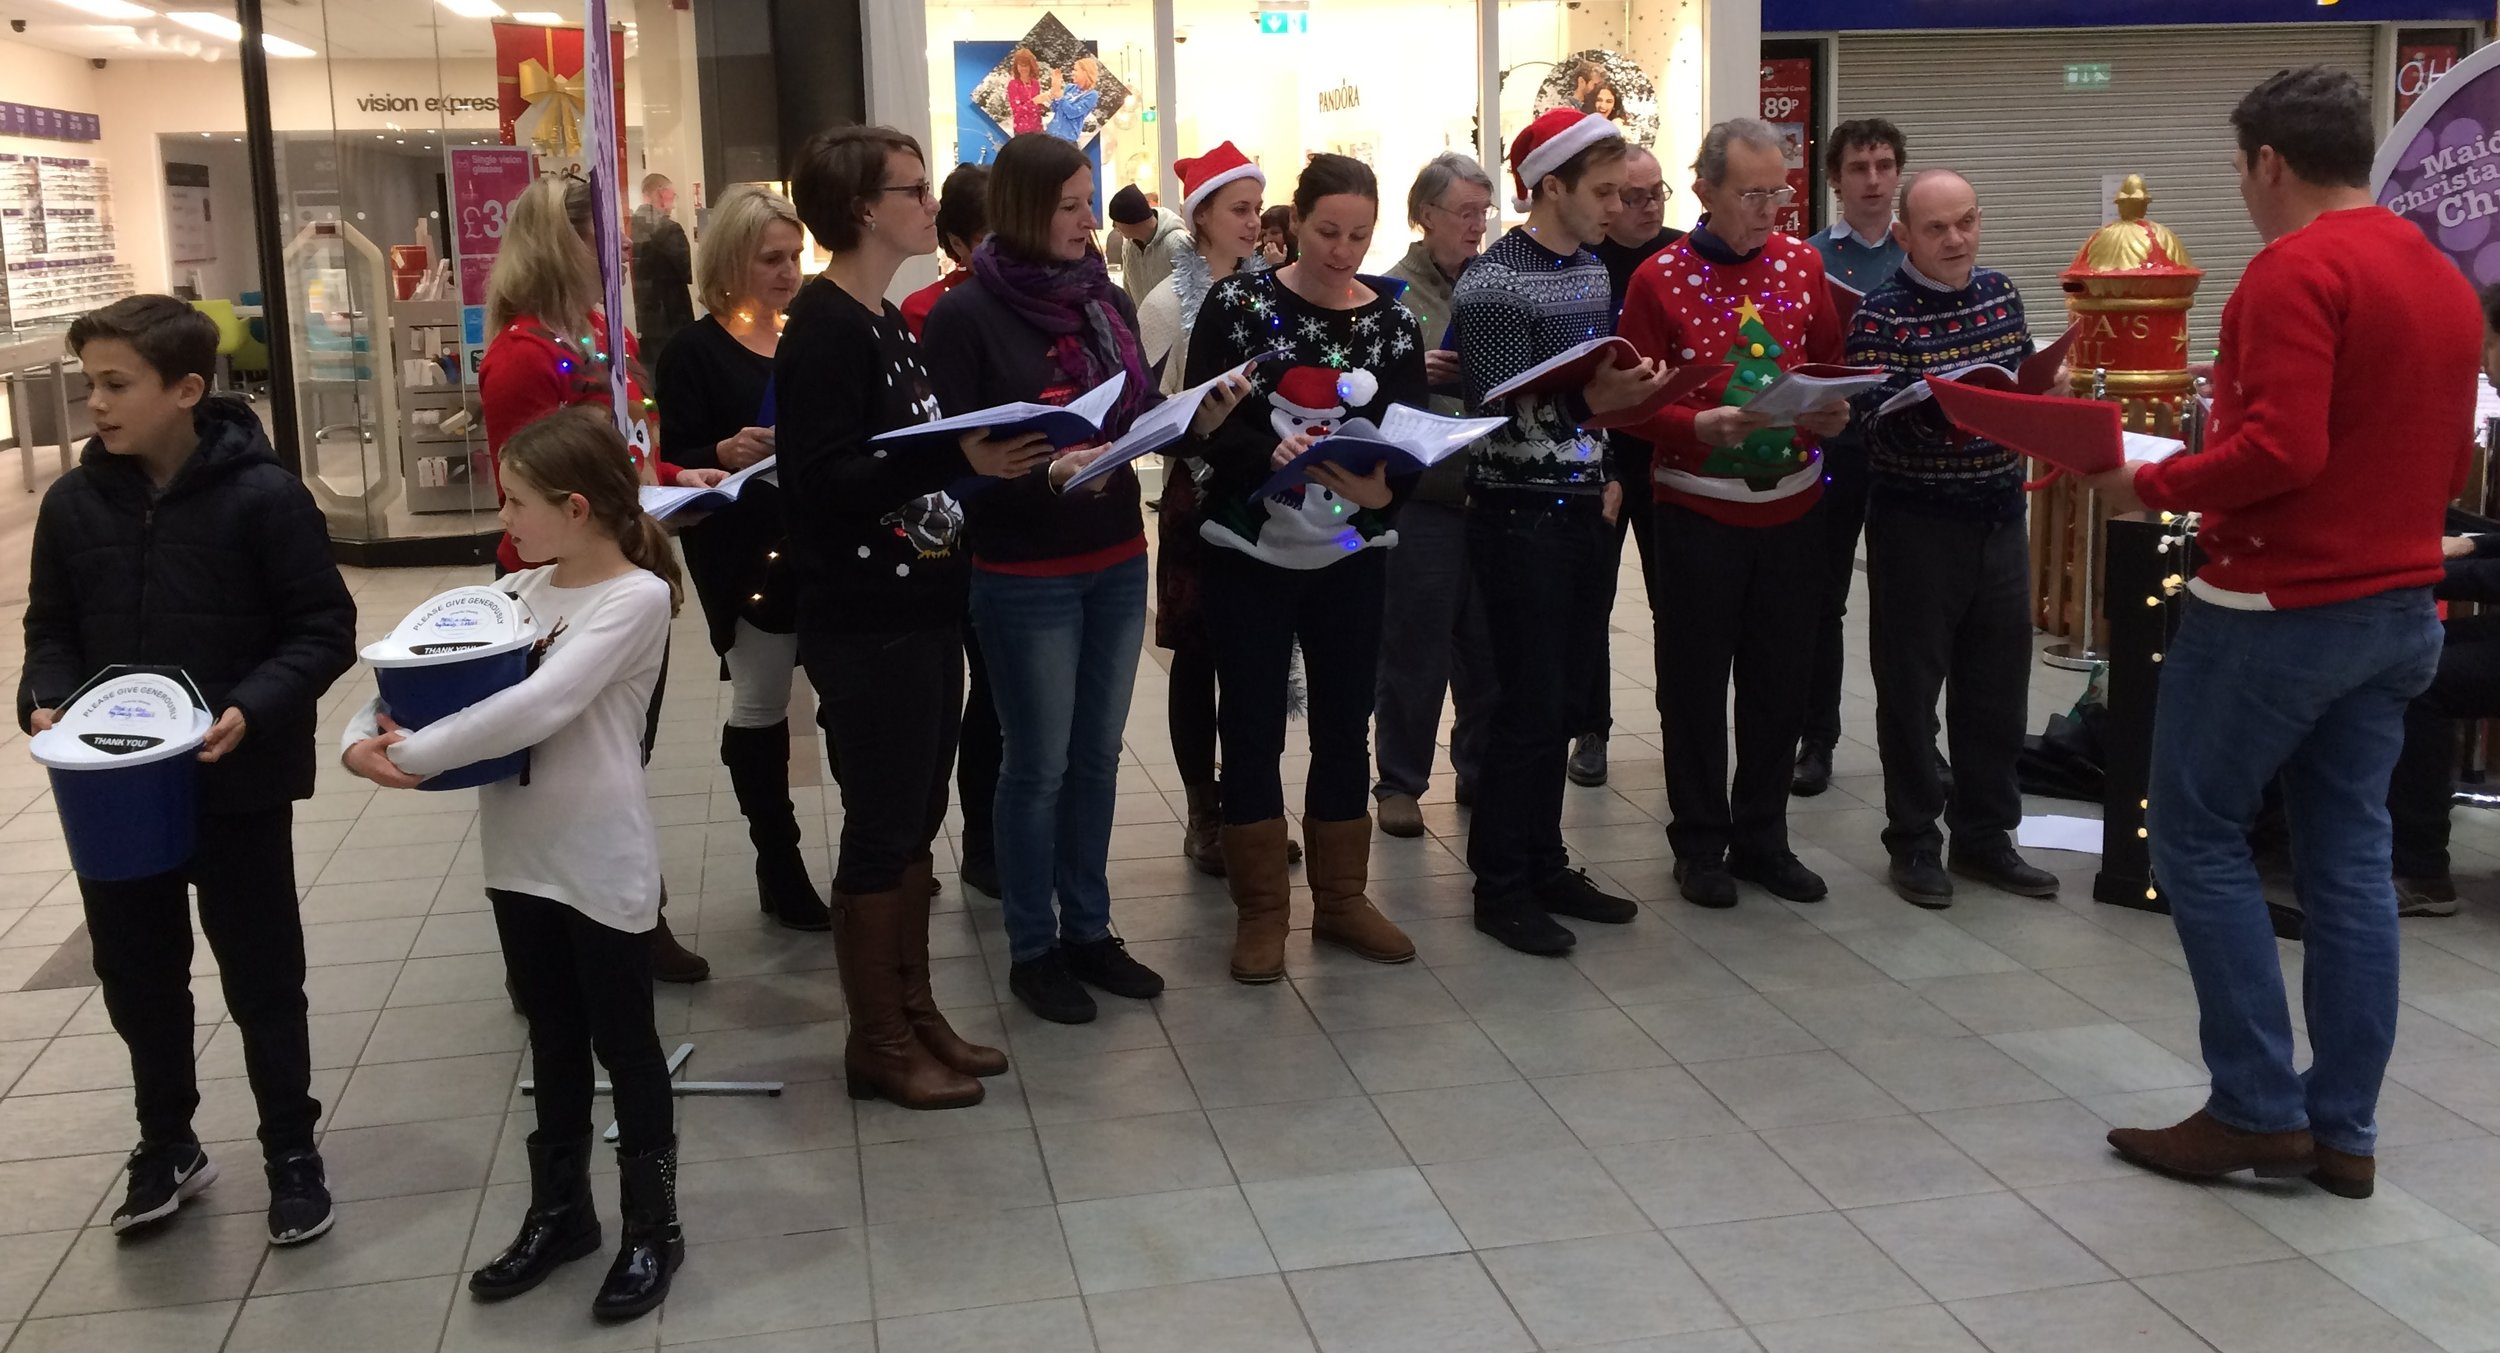 Community fundraising - Carol Singing in Nicholson CentreOn the 17th of December members of the church sang some classic carols and provided some Christmas cheer at the Nicholson Centre in Maidenhead. We raised money for Meal a Day, a charity that we support regularly.www.meal-a-day.org